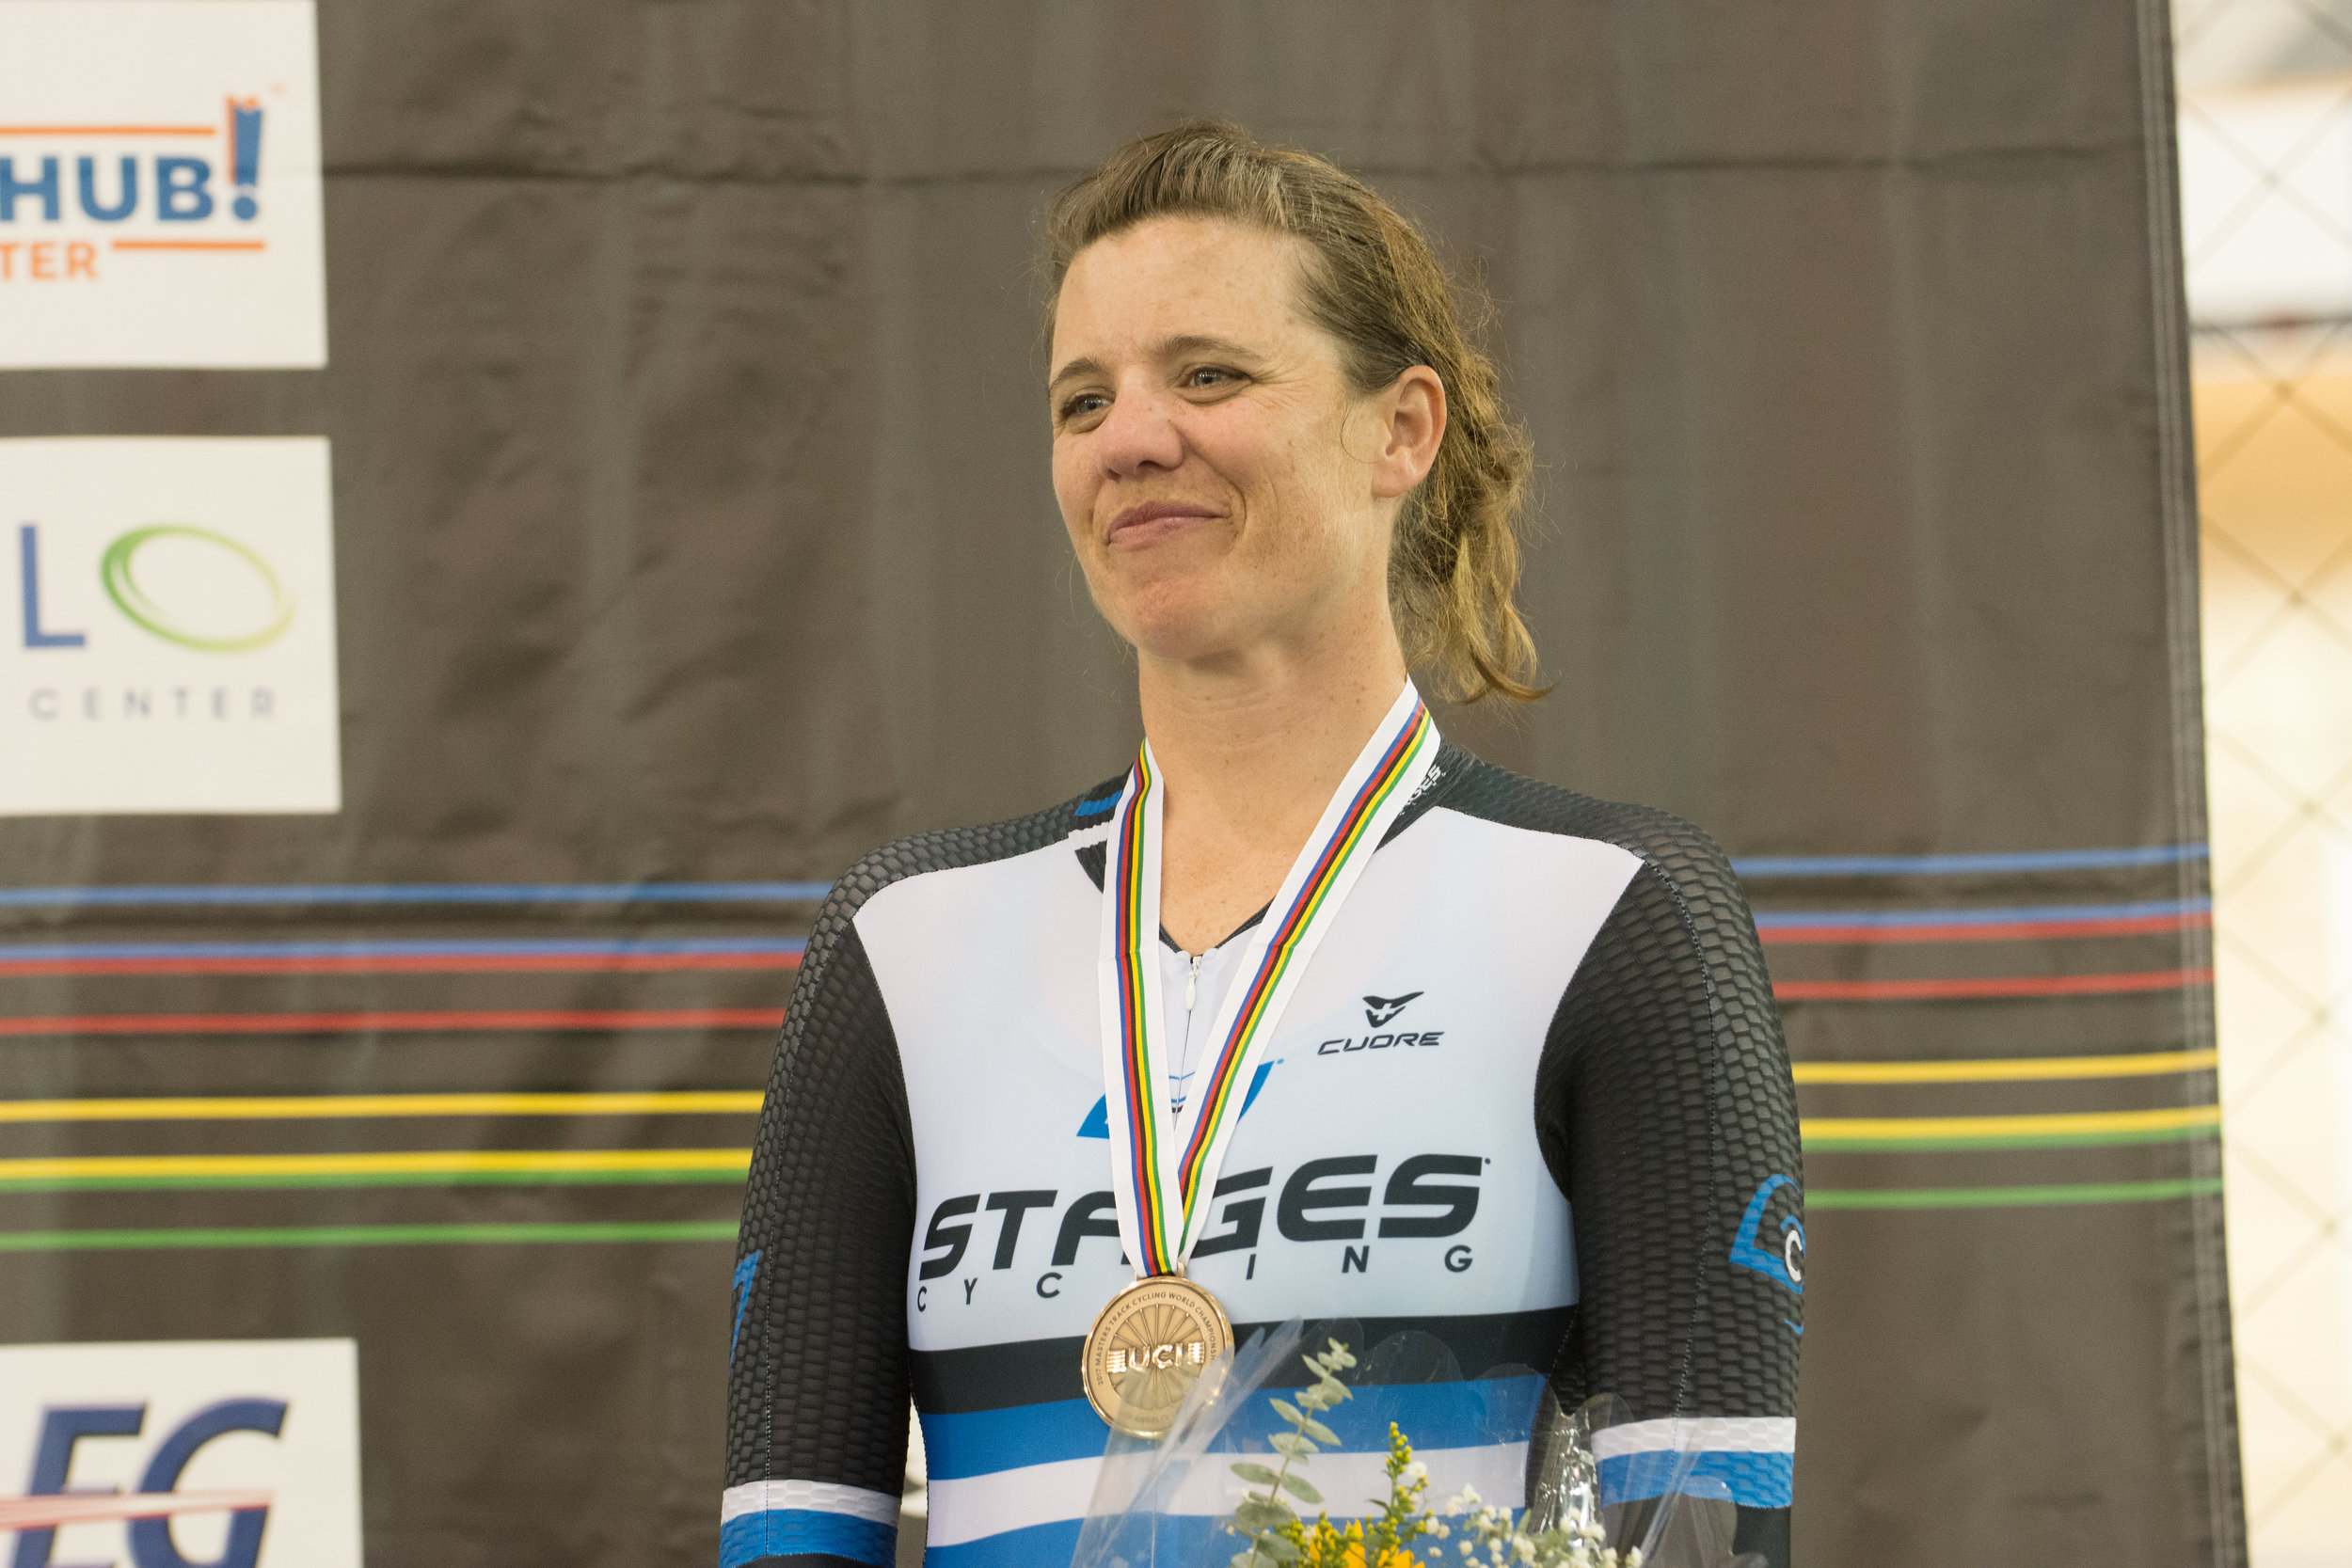 Bronze medal in the 2k Pursuit. Photo by Craig Huffman.